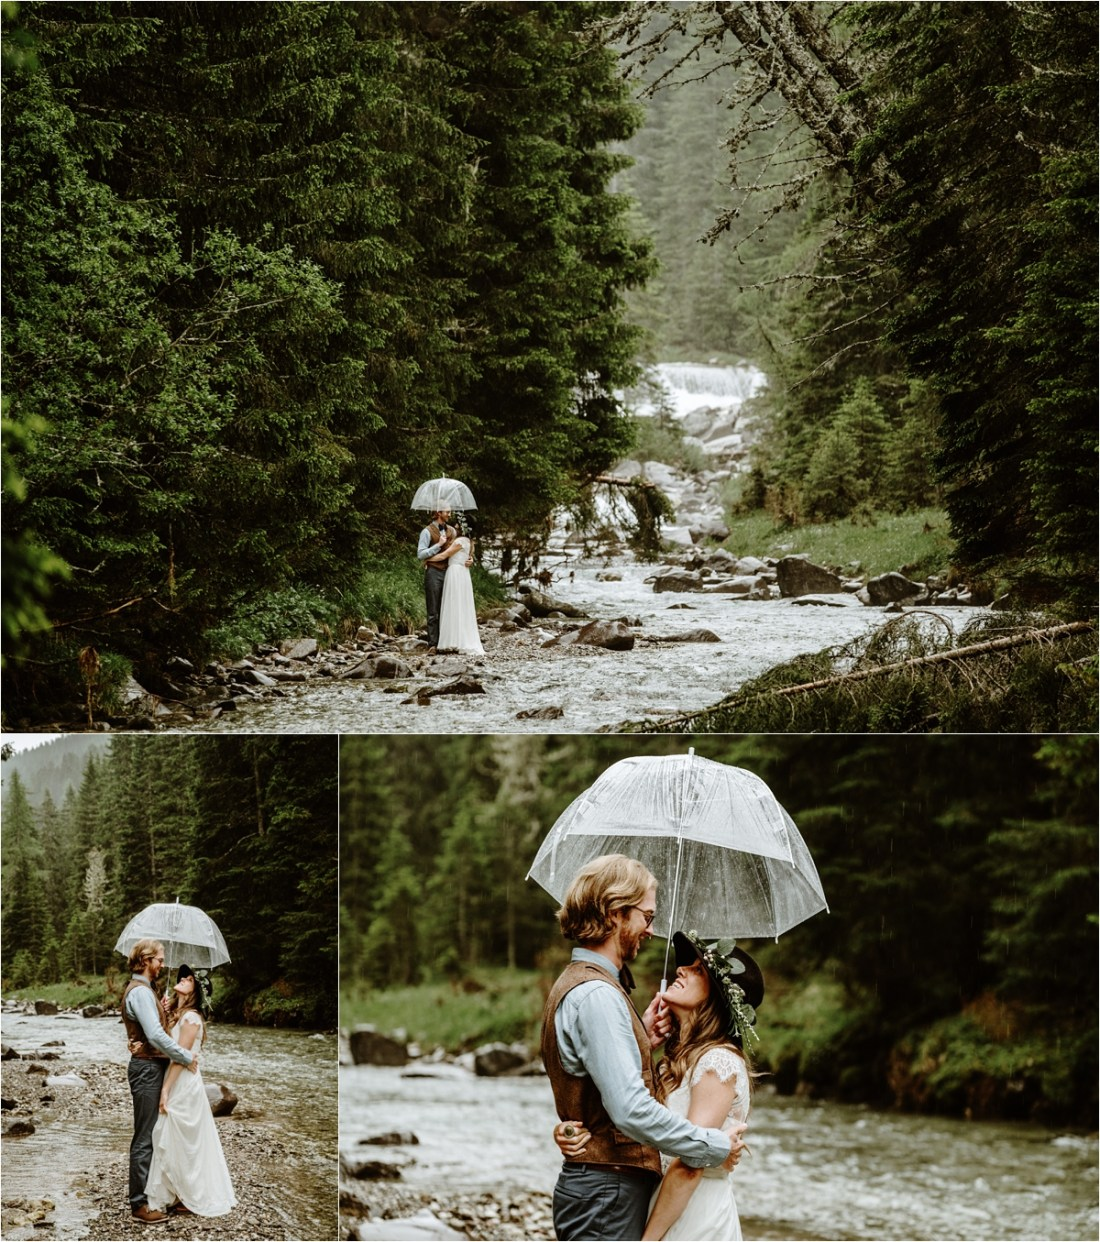 A rainy wedding day in the Dolomites, the bride and groom shelter under an umbrella next to a gushing river. Photography by Wild Connections Photography